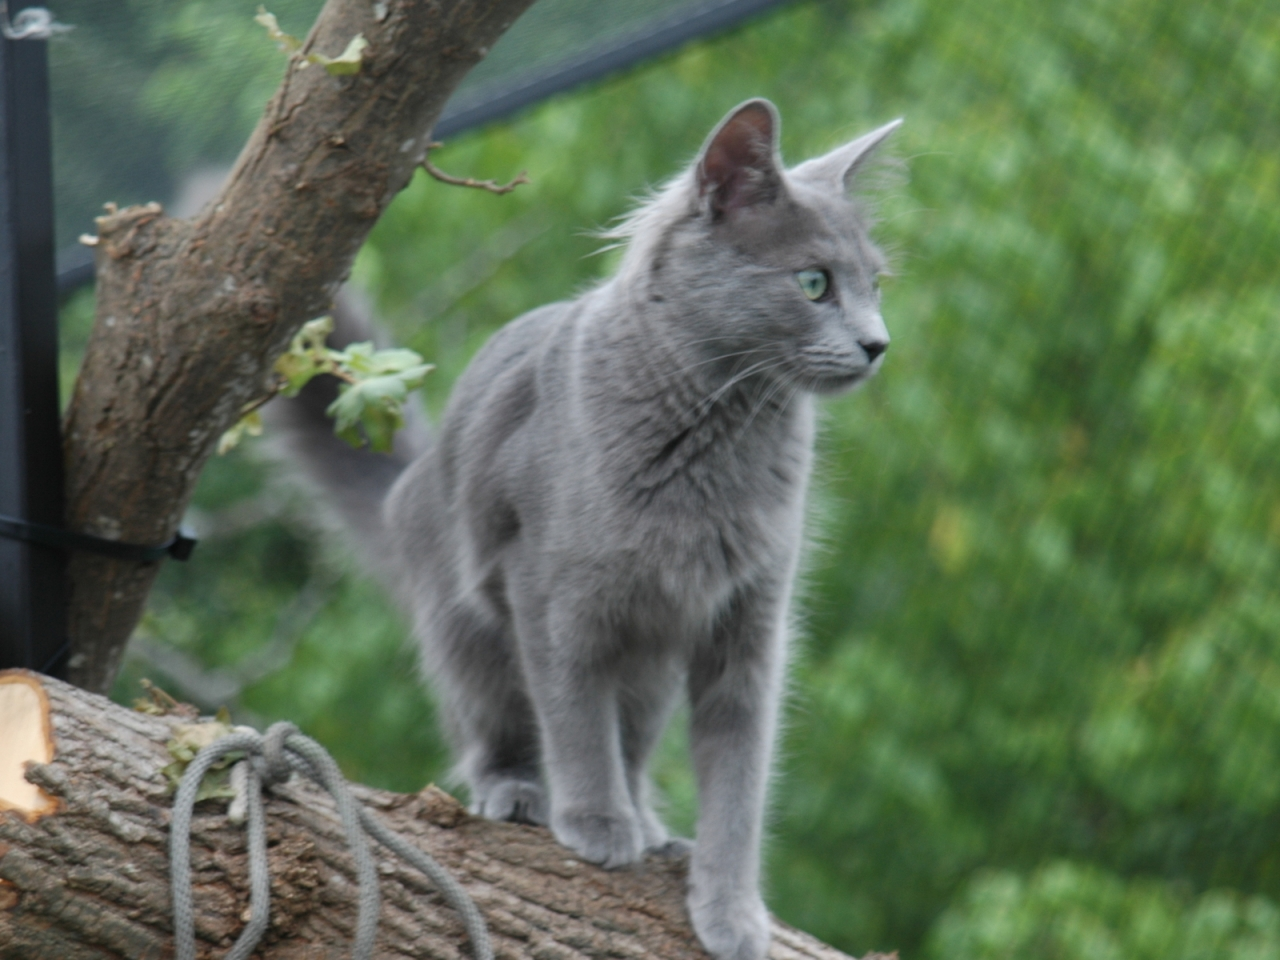 Nebelung Cat on Stump for 1280 x 960 resolution